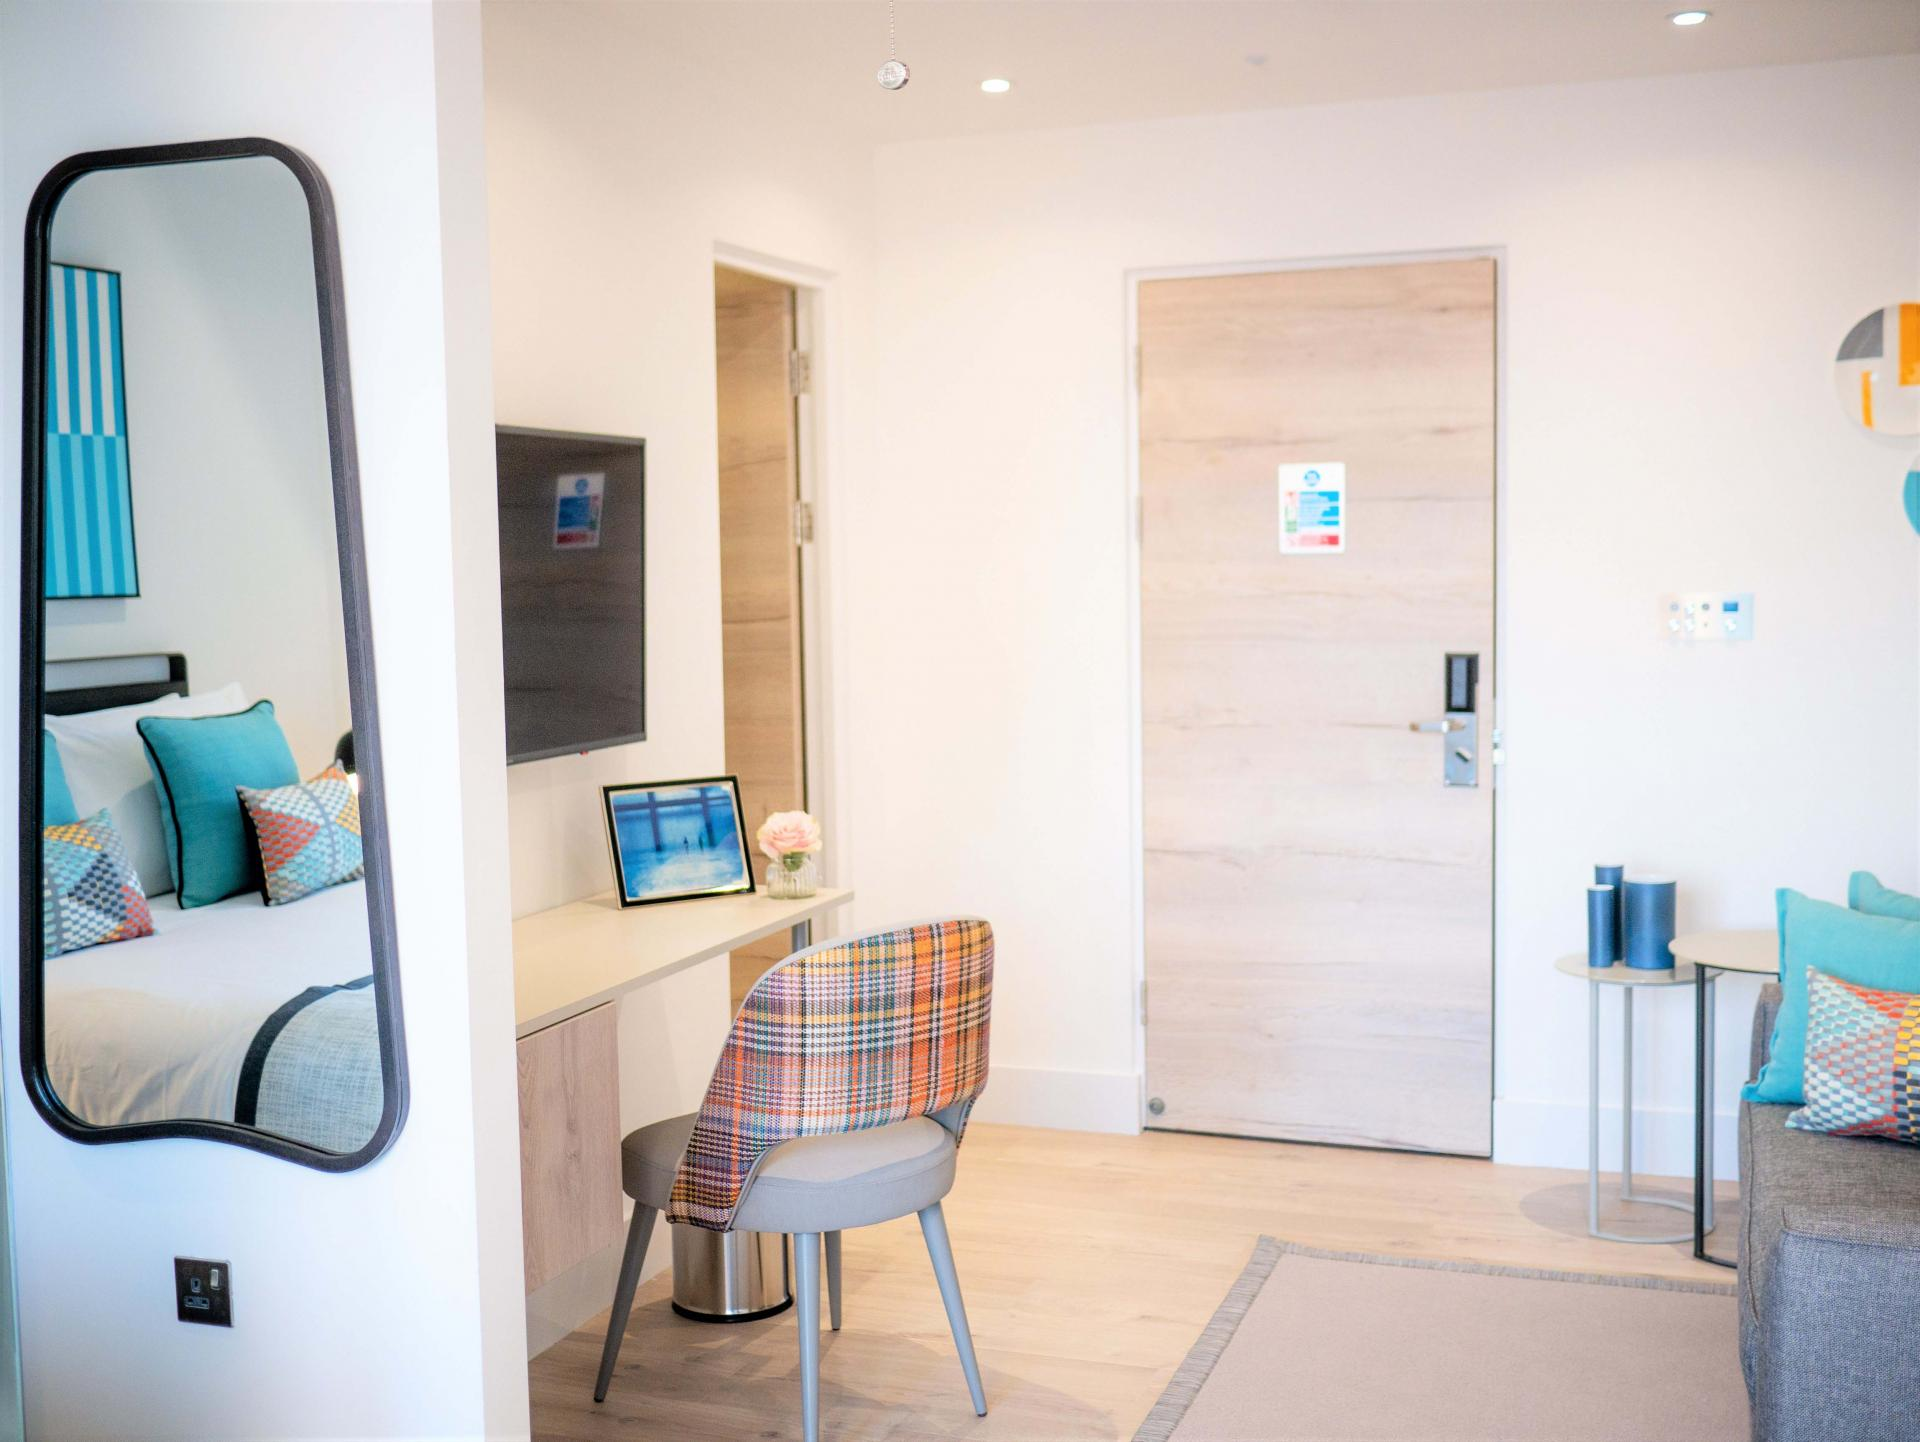 Studio Suites at Q Square Aparthotel, Centre, Brighton - Citybase Apartments